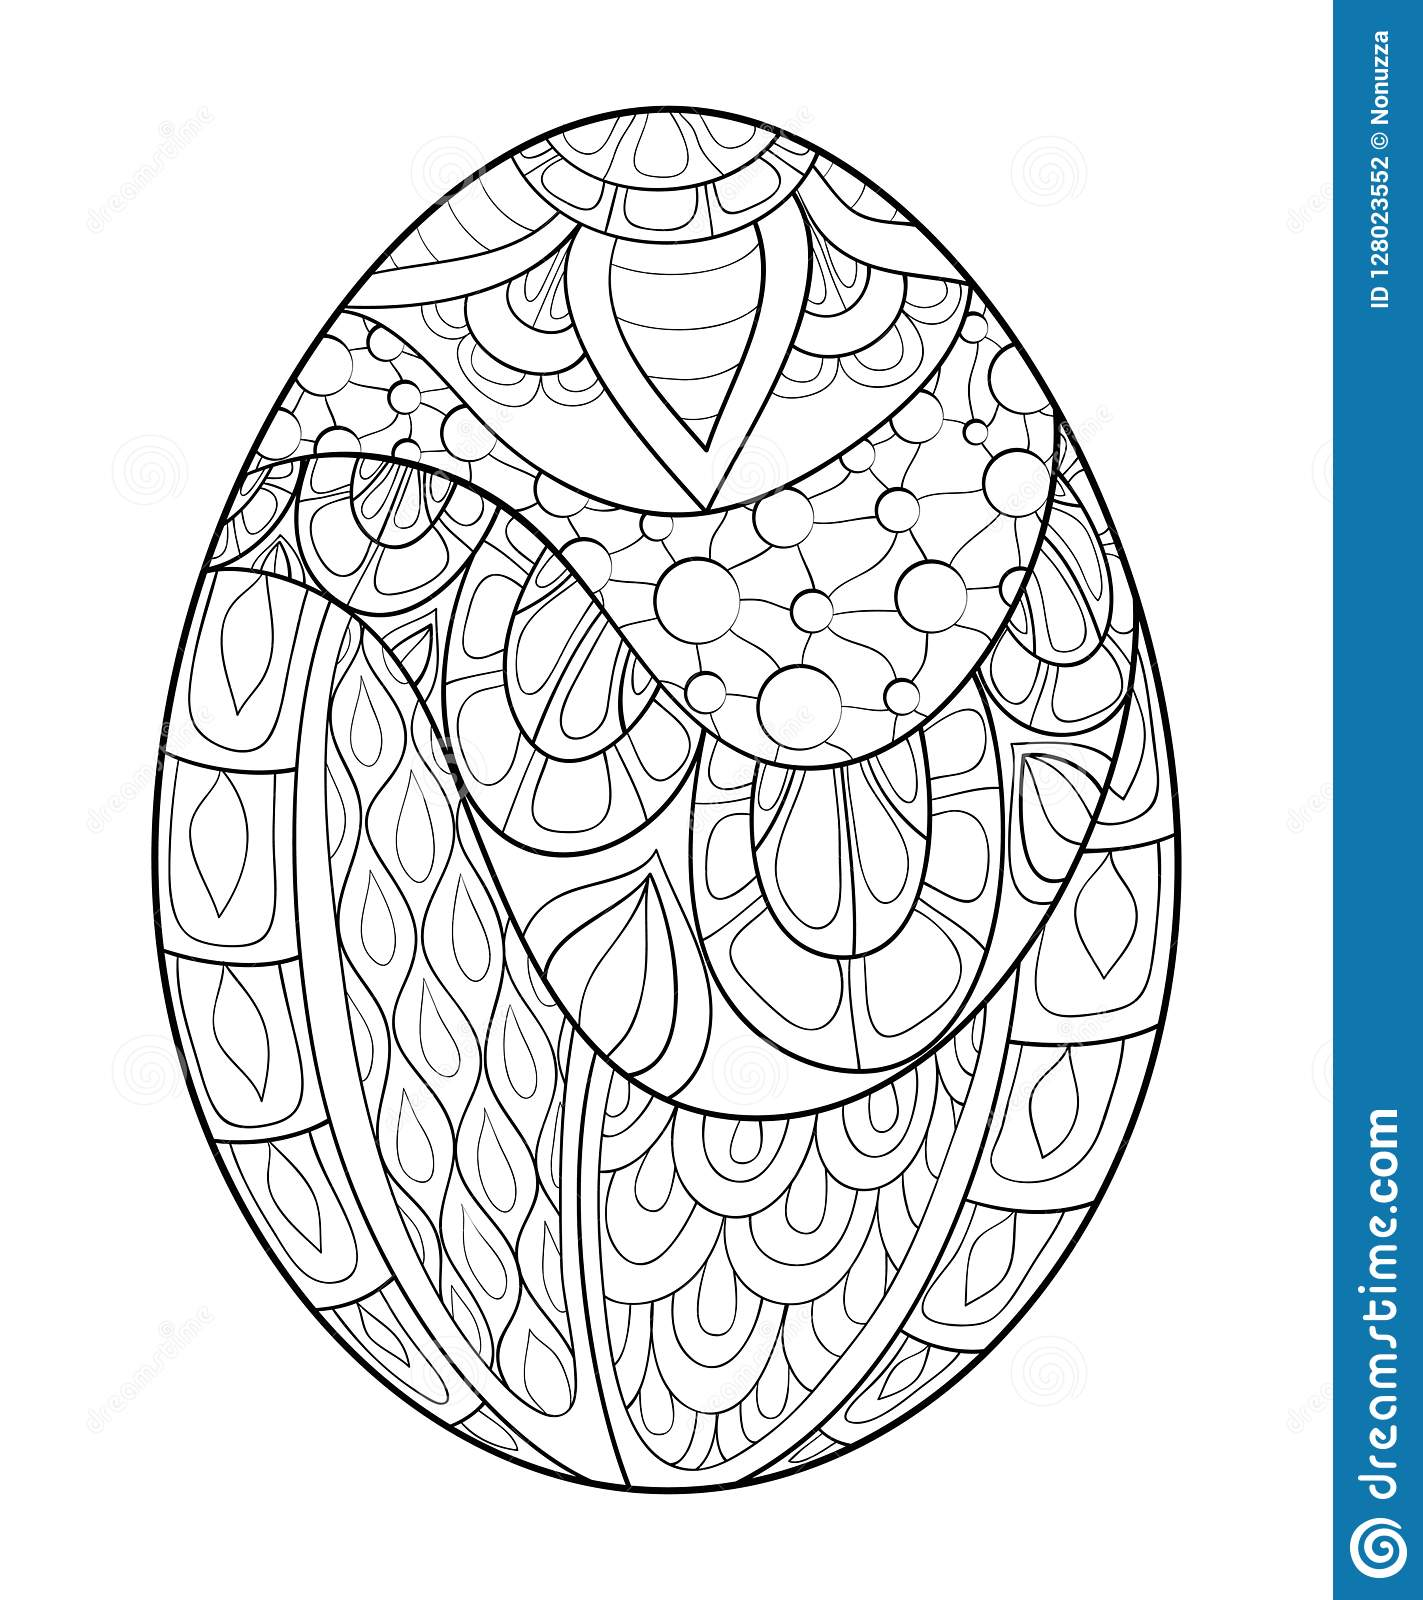 Adult Coloring Book,page A Cute Easter Egg Image For Relaxing. Stock ...